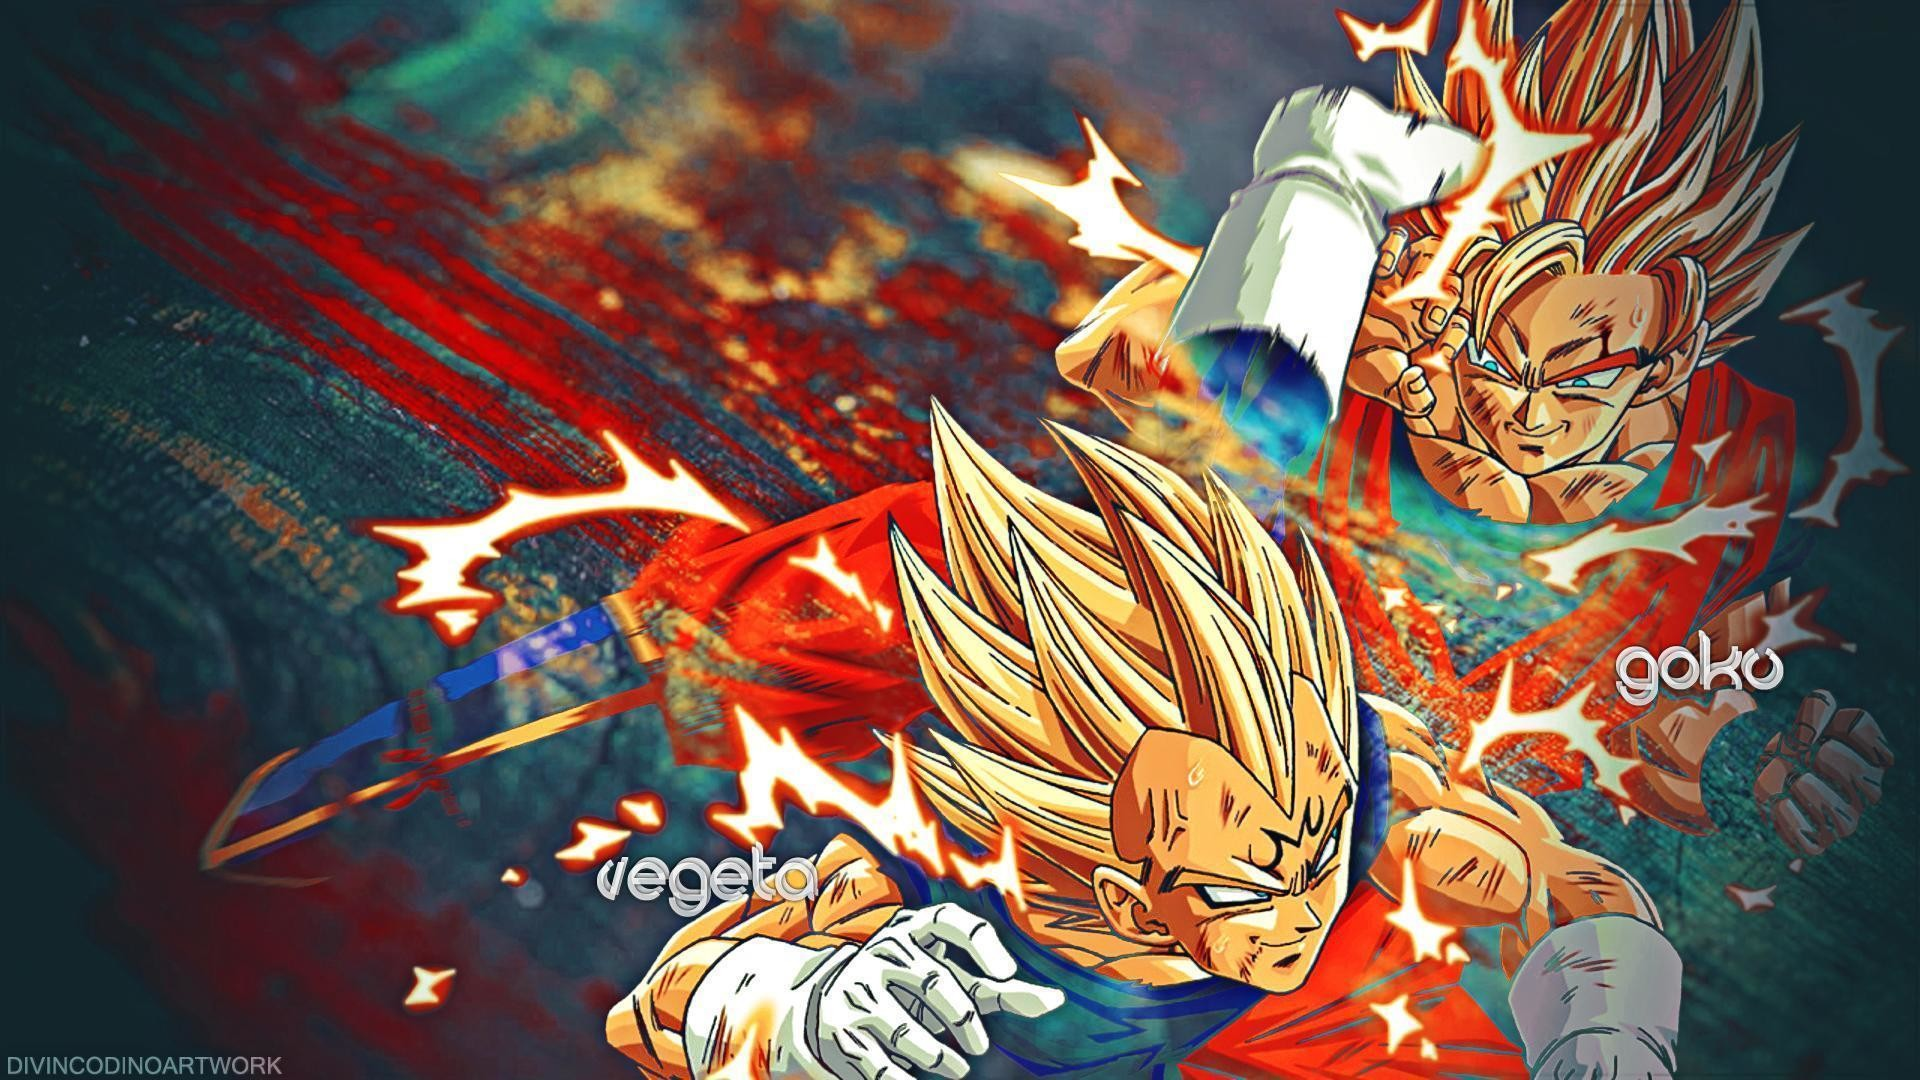 Dbz hd wallpaper 1920x1080 63 images - Images dragon ball z ...